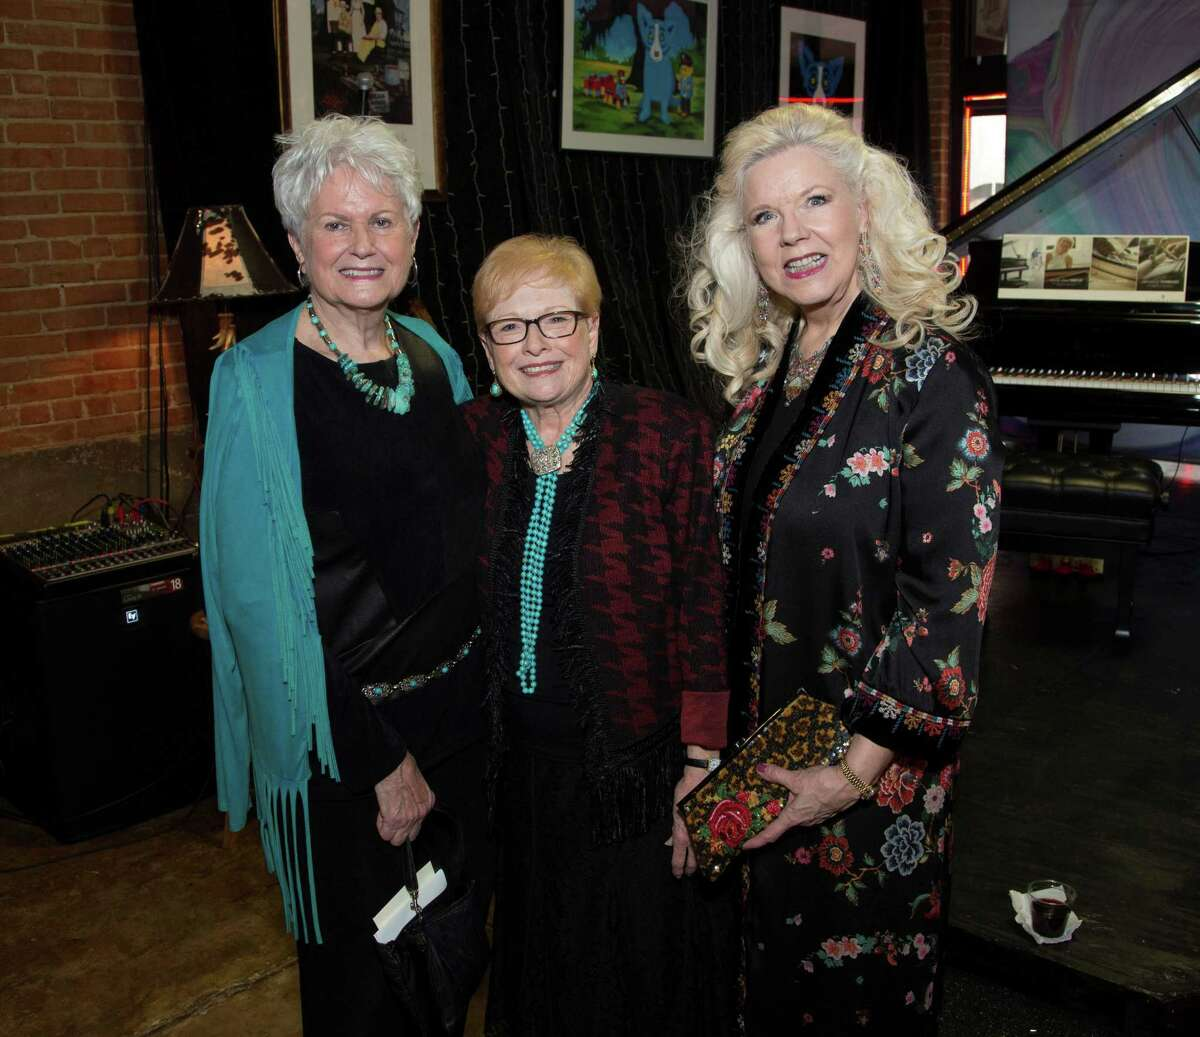 Annette Spikes, Carol Aycock and Garlaine Kelly attend the annual Bach, Barbecue and Beethoven fundraiser prior to the Finalist Concert for the Young Texas Artists Music Competition on March 9 in downtown Conroe. This year's event is set for March 14 at 5 p.m. at the YTA Pavilion near the Crighton Theatre.